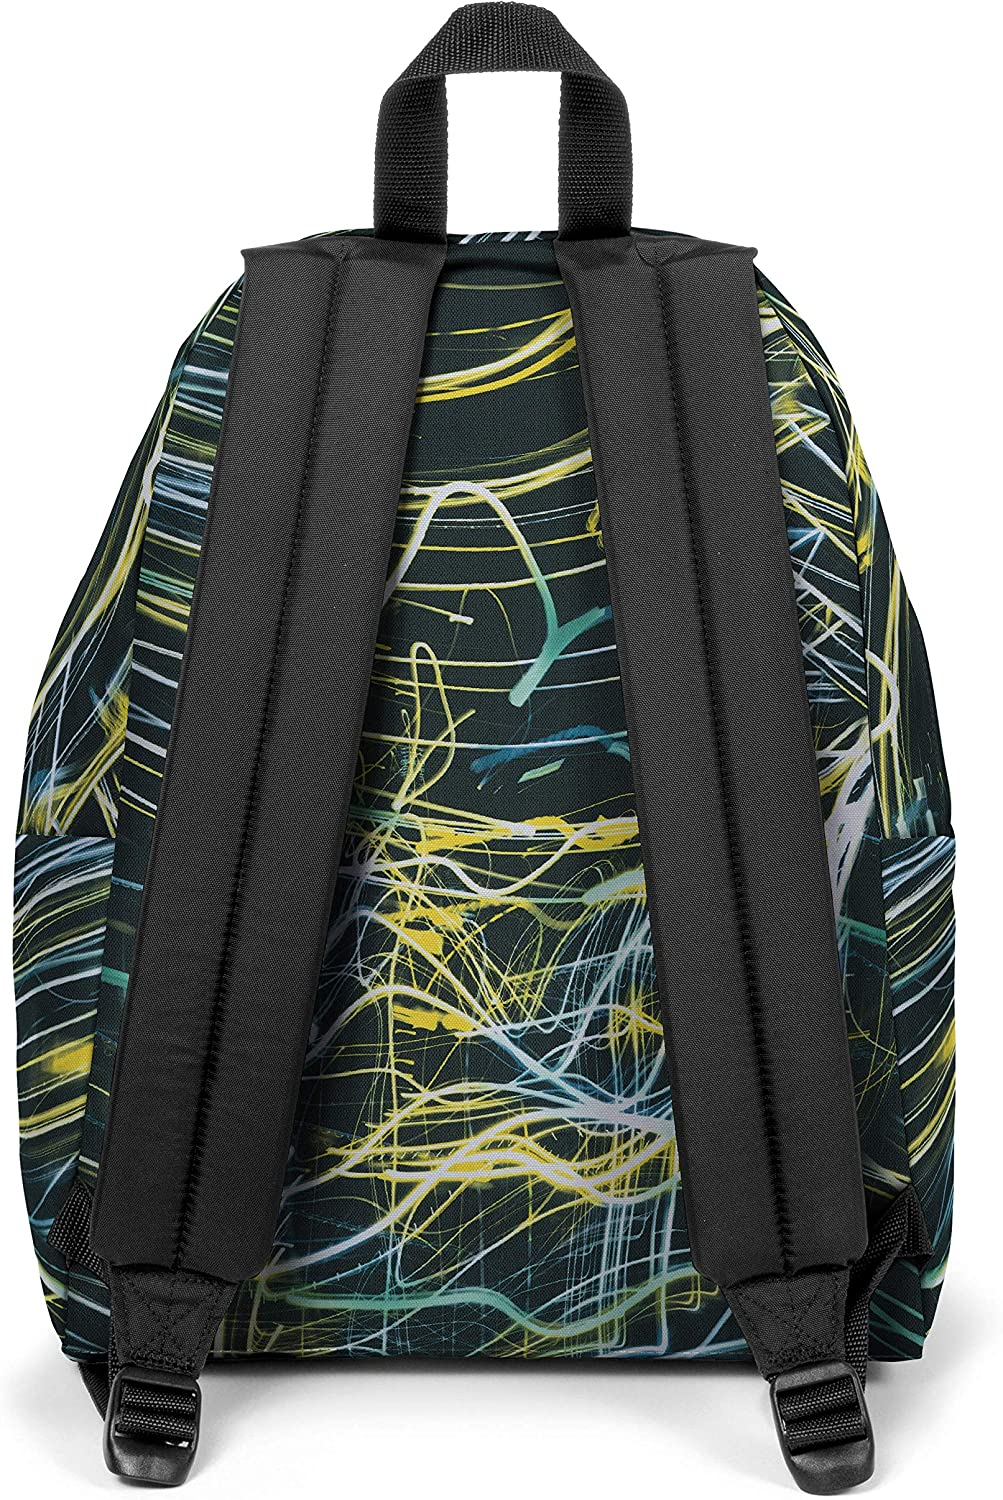 Sea Net 40 cm Eastpak Padded Pakr Sac /à/ Dos 24 L Noir